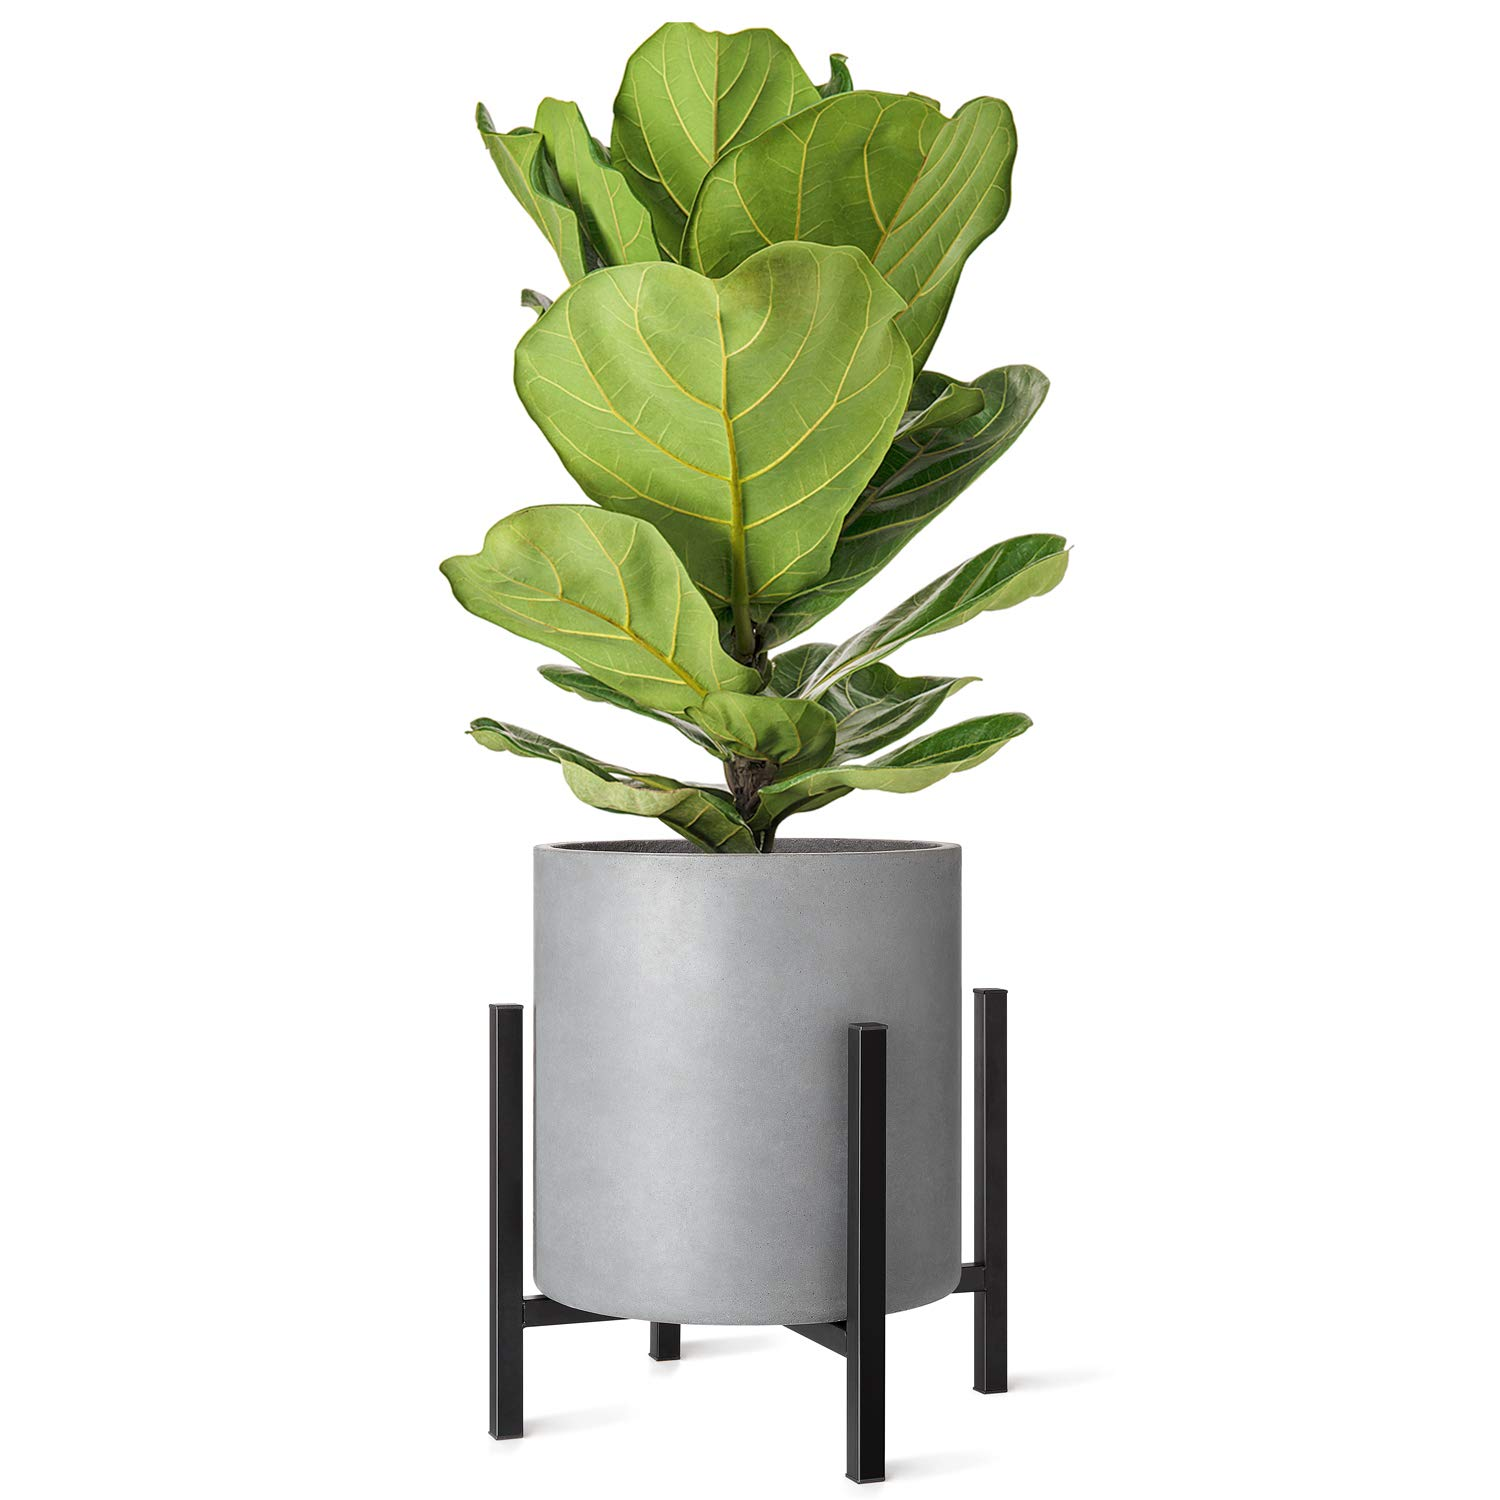 Mkono Plant Stand Mid Century, Fits Up to 14 Inch Planter (Plant Pot Not Included) Tall Flower Pot Stands Indoor Outdoor Metal Potted Plant Holder, Plants Display Rack